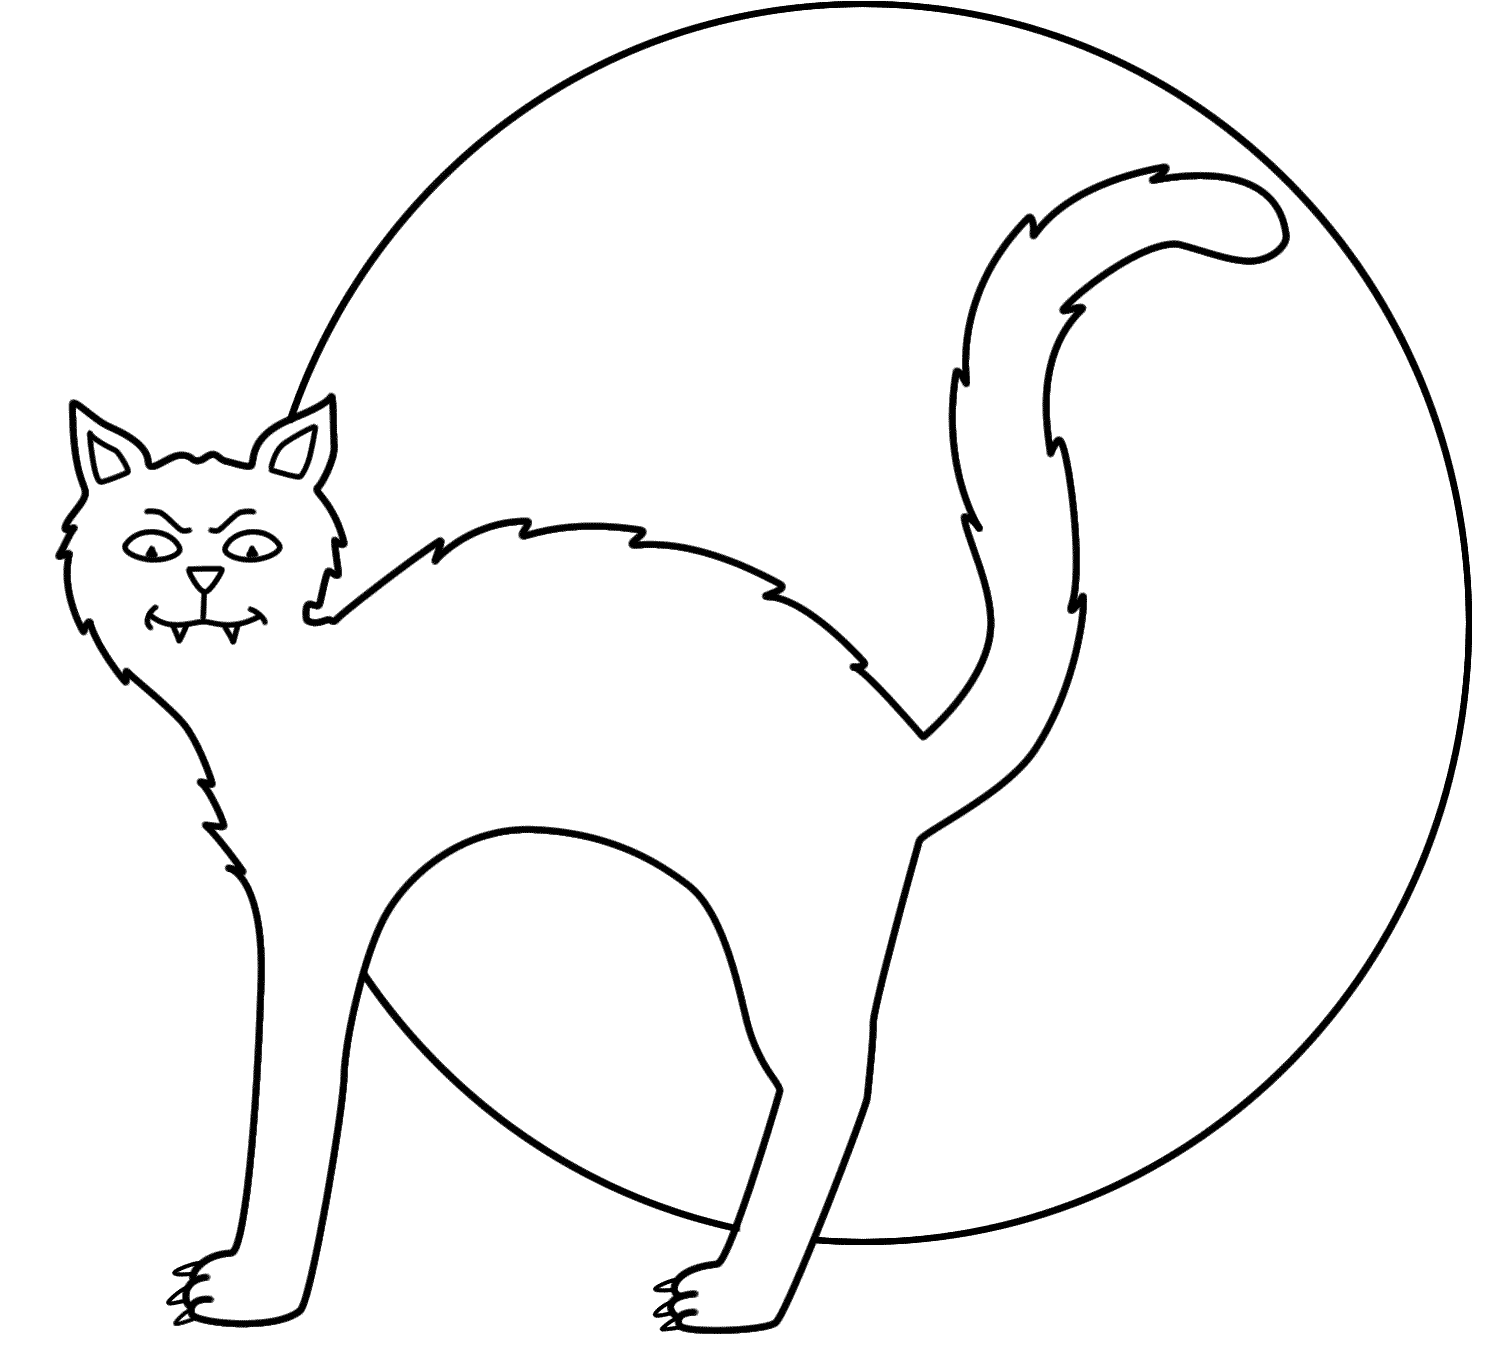 halloween black cat coloring pages black cats drawing at getdrawings free download cat pages coloring black halloween